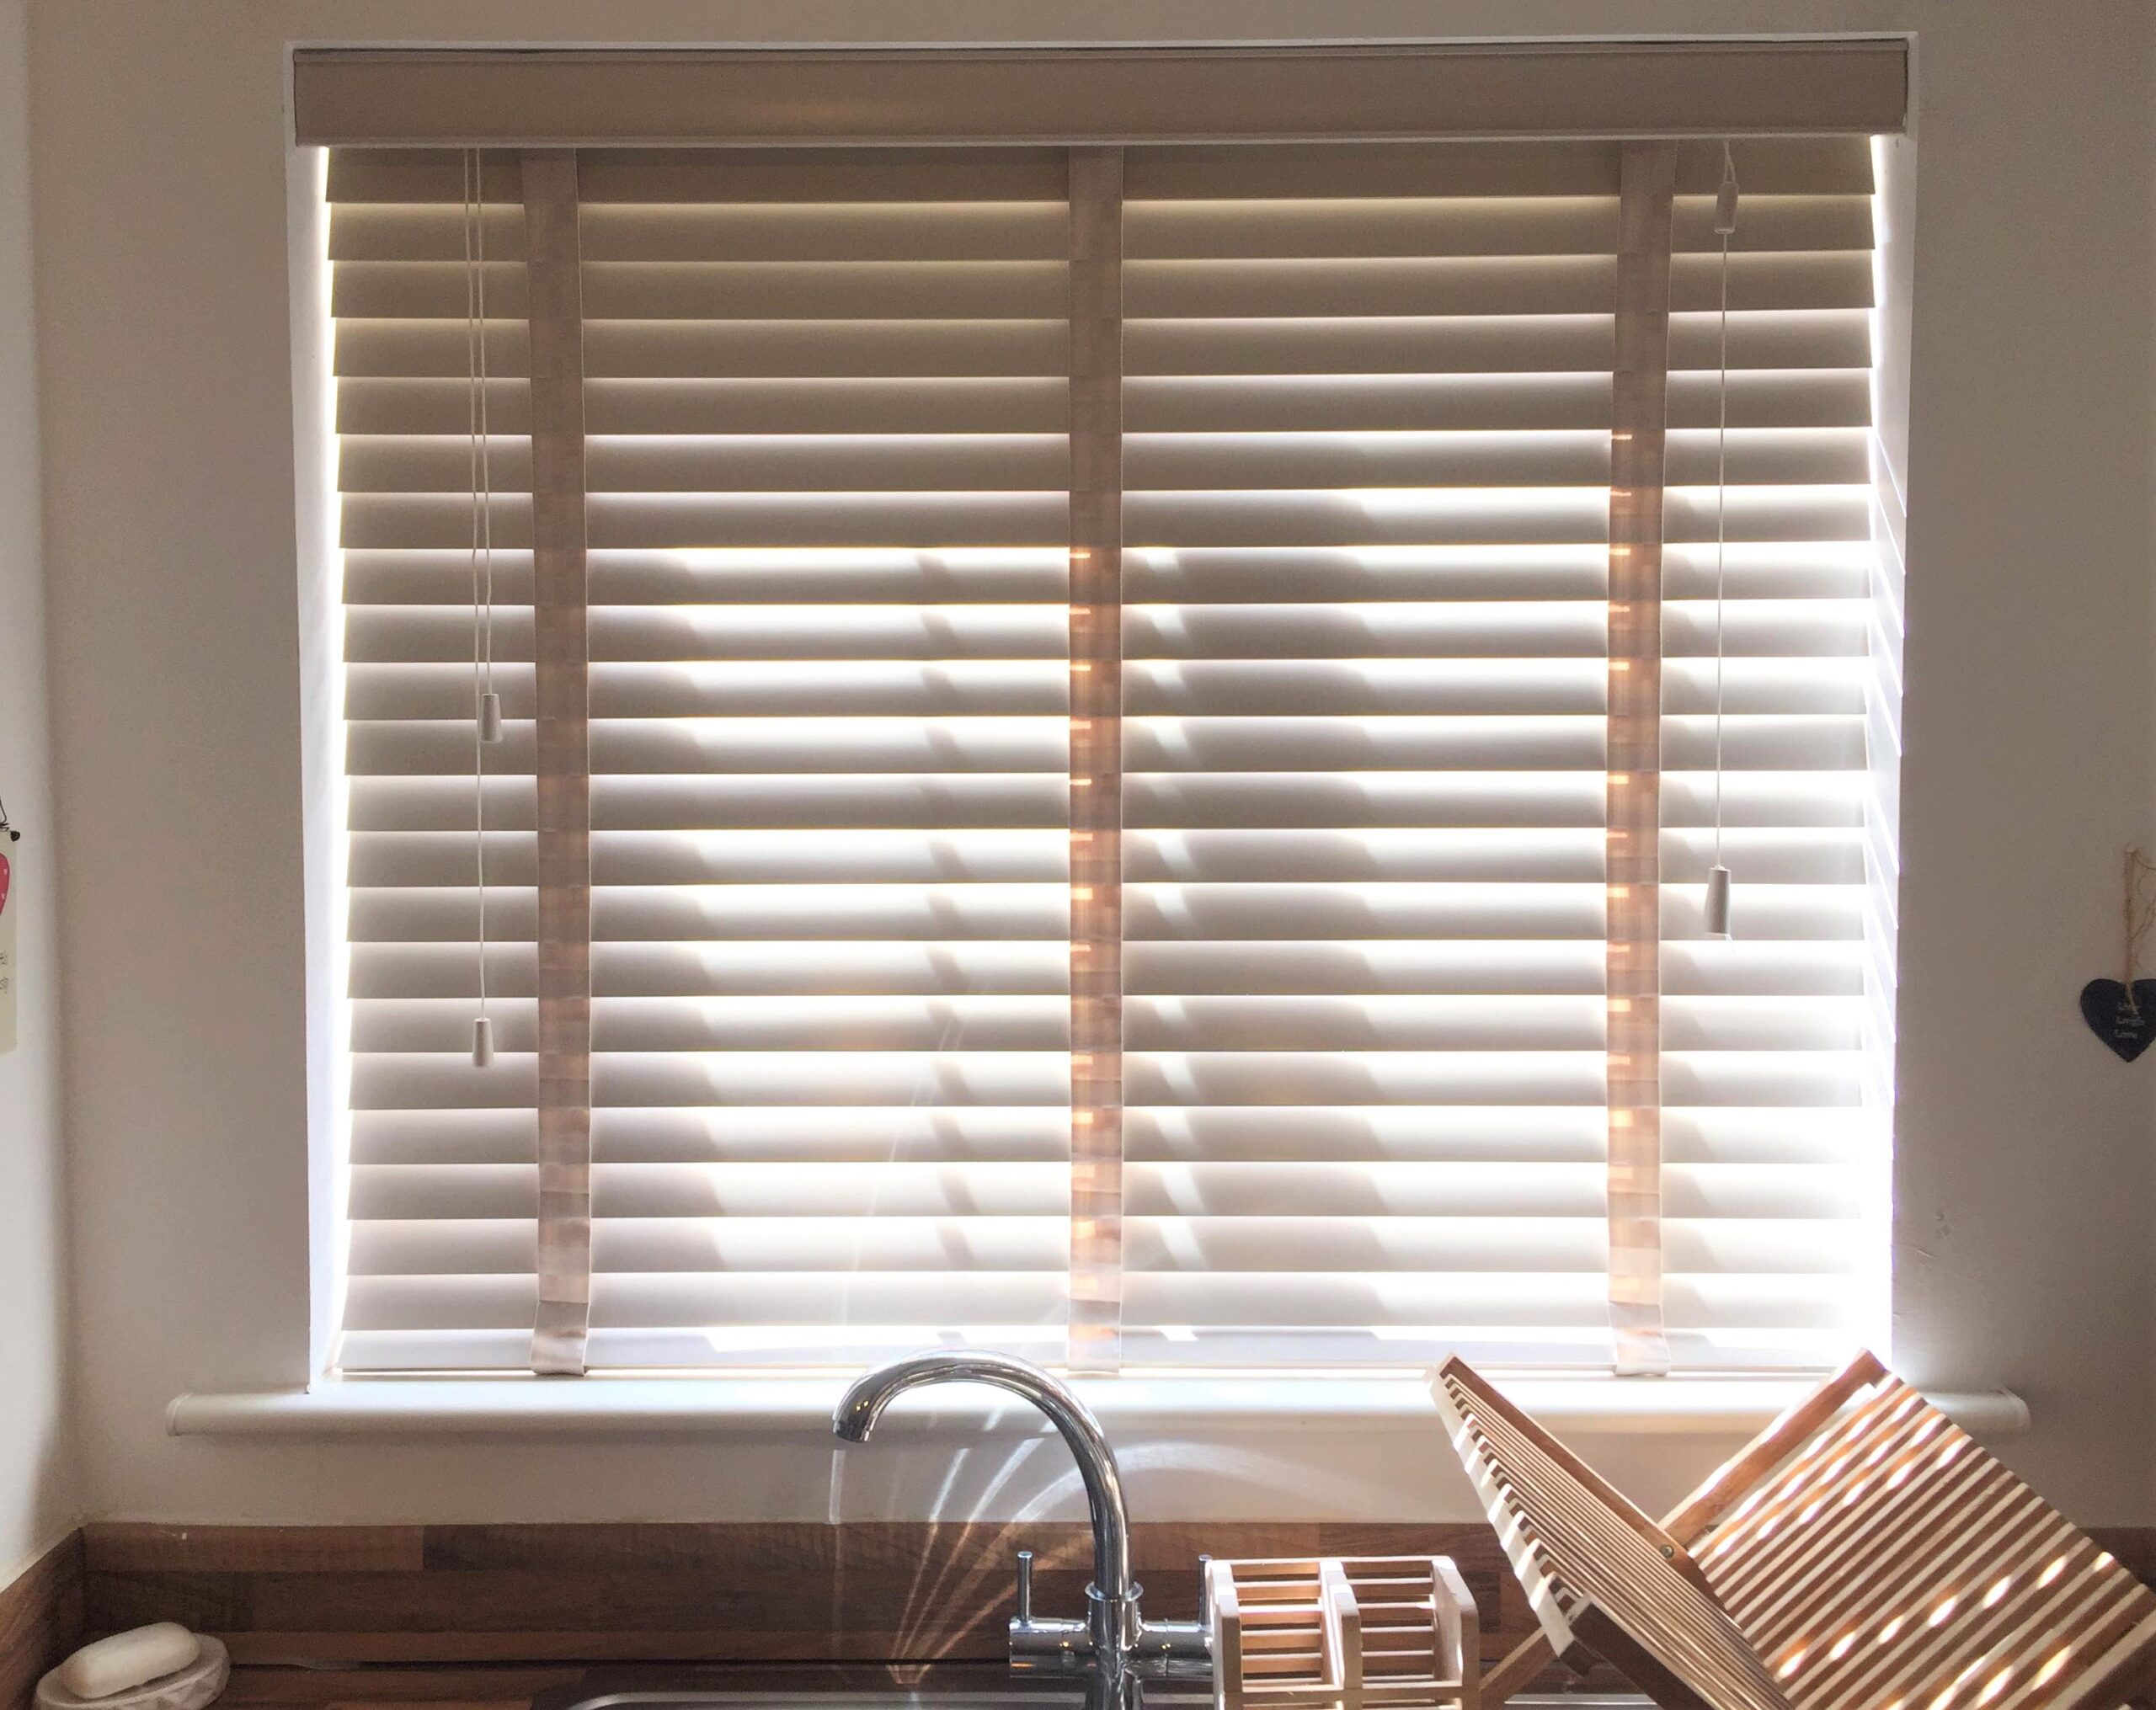 Make my blinds slats closed in the kitchen end of our room